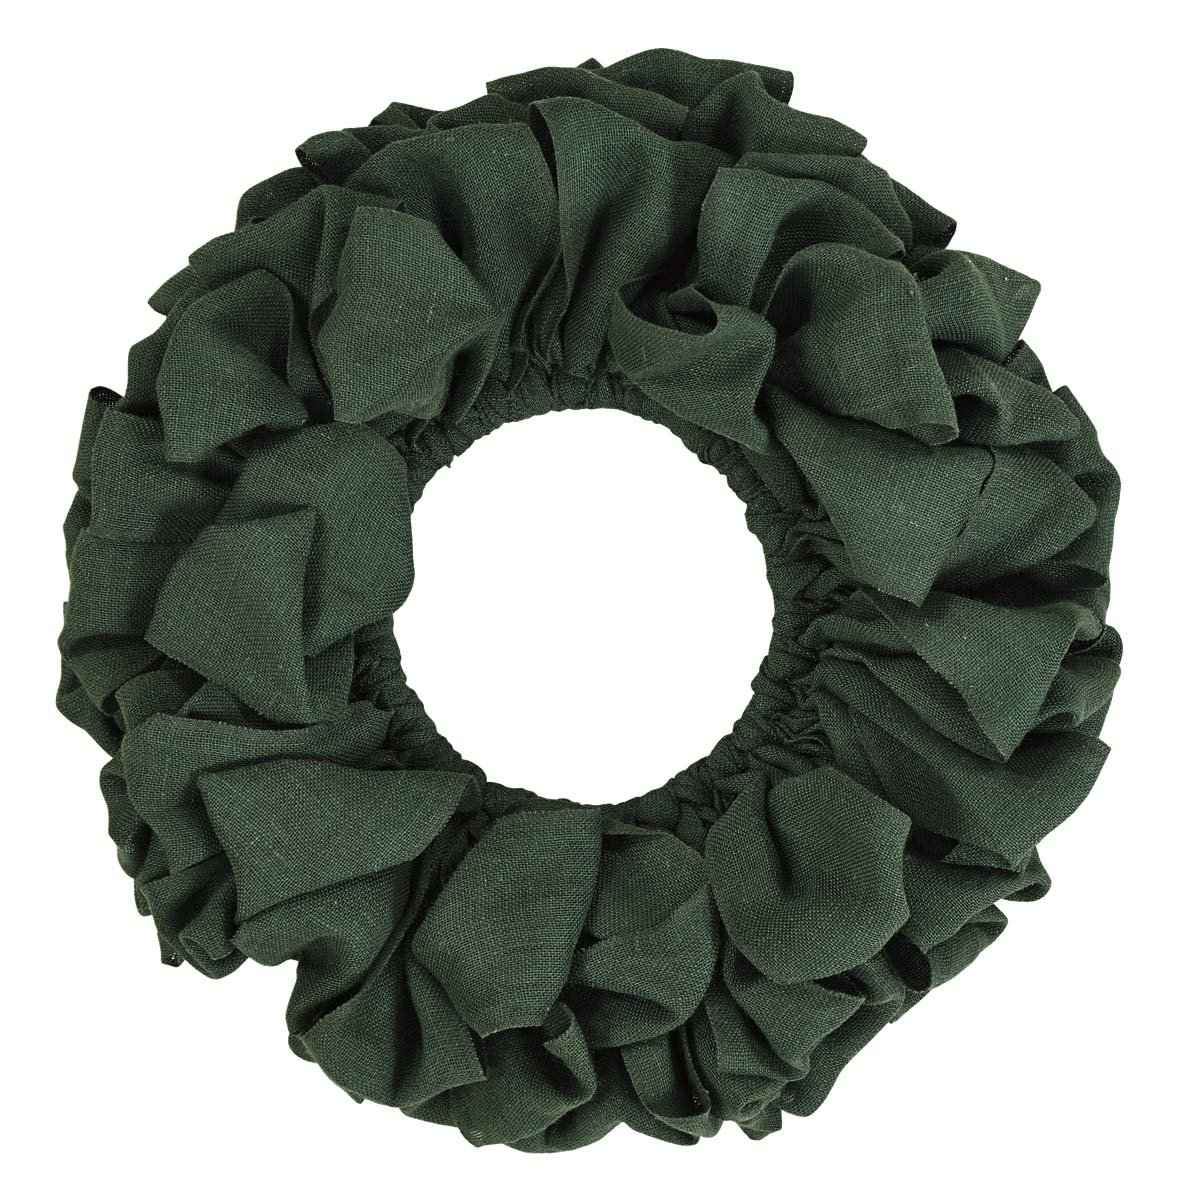 VHC Brands Christmas Holiday Decor - Burlap Round Wreath, Green, 20'' Diameter